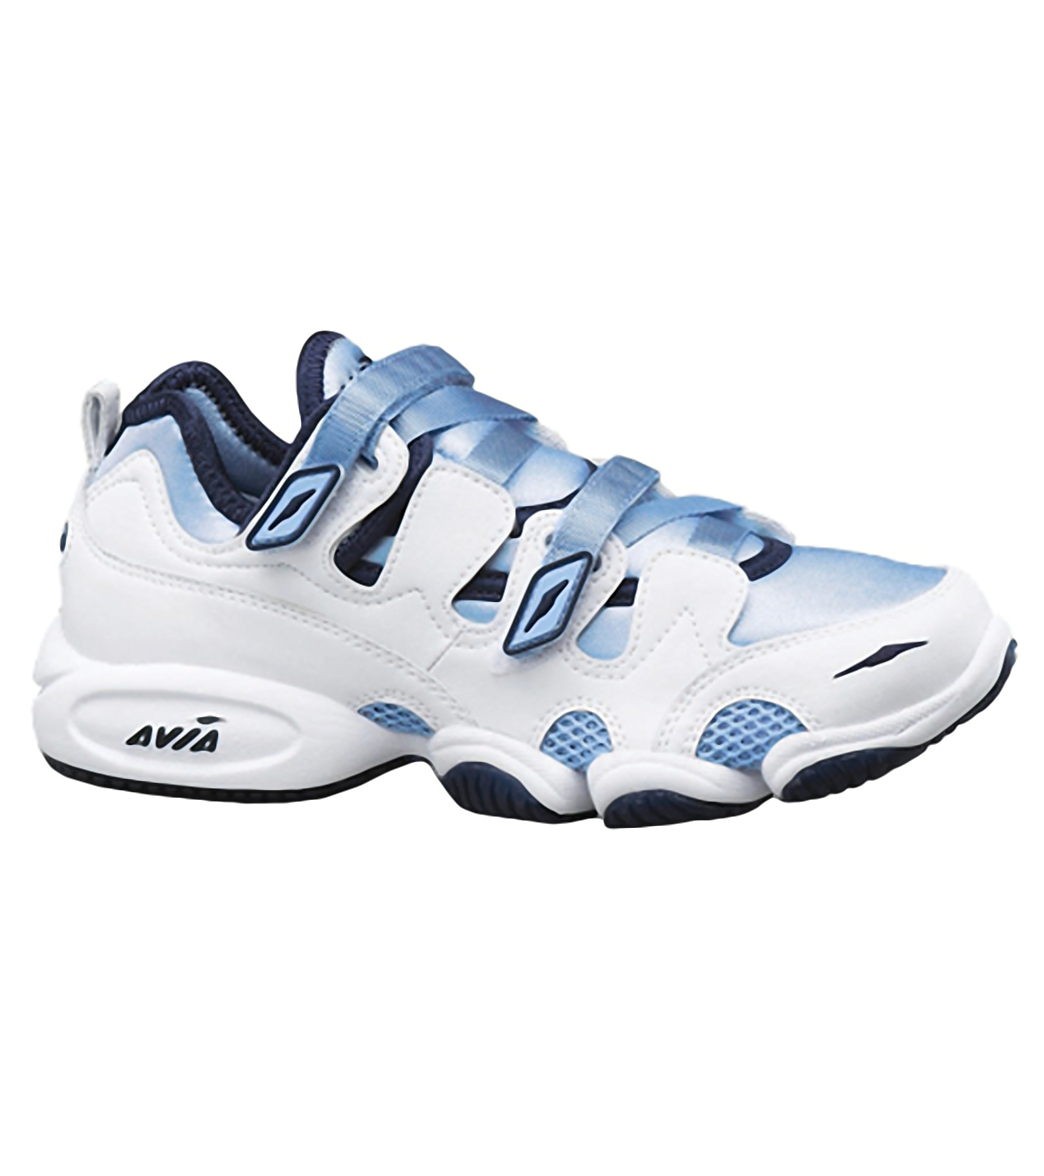 Avia Women's Water Fitness Shoes at SwimOutlet.com